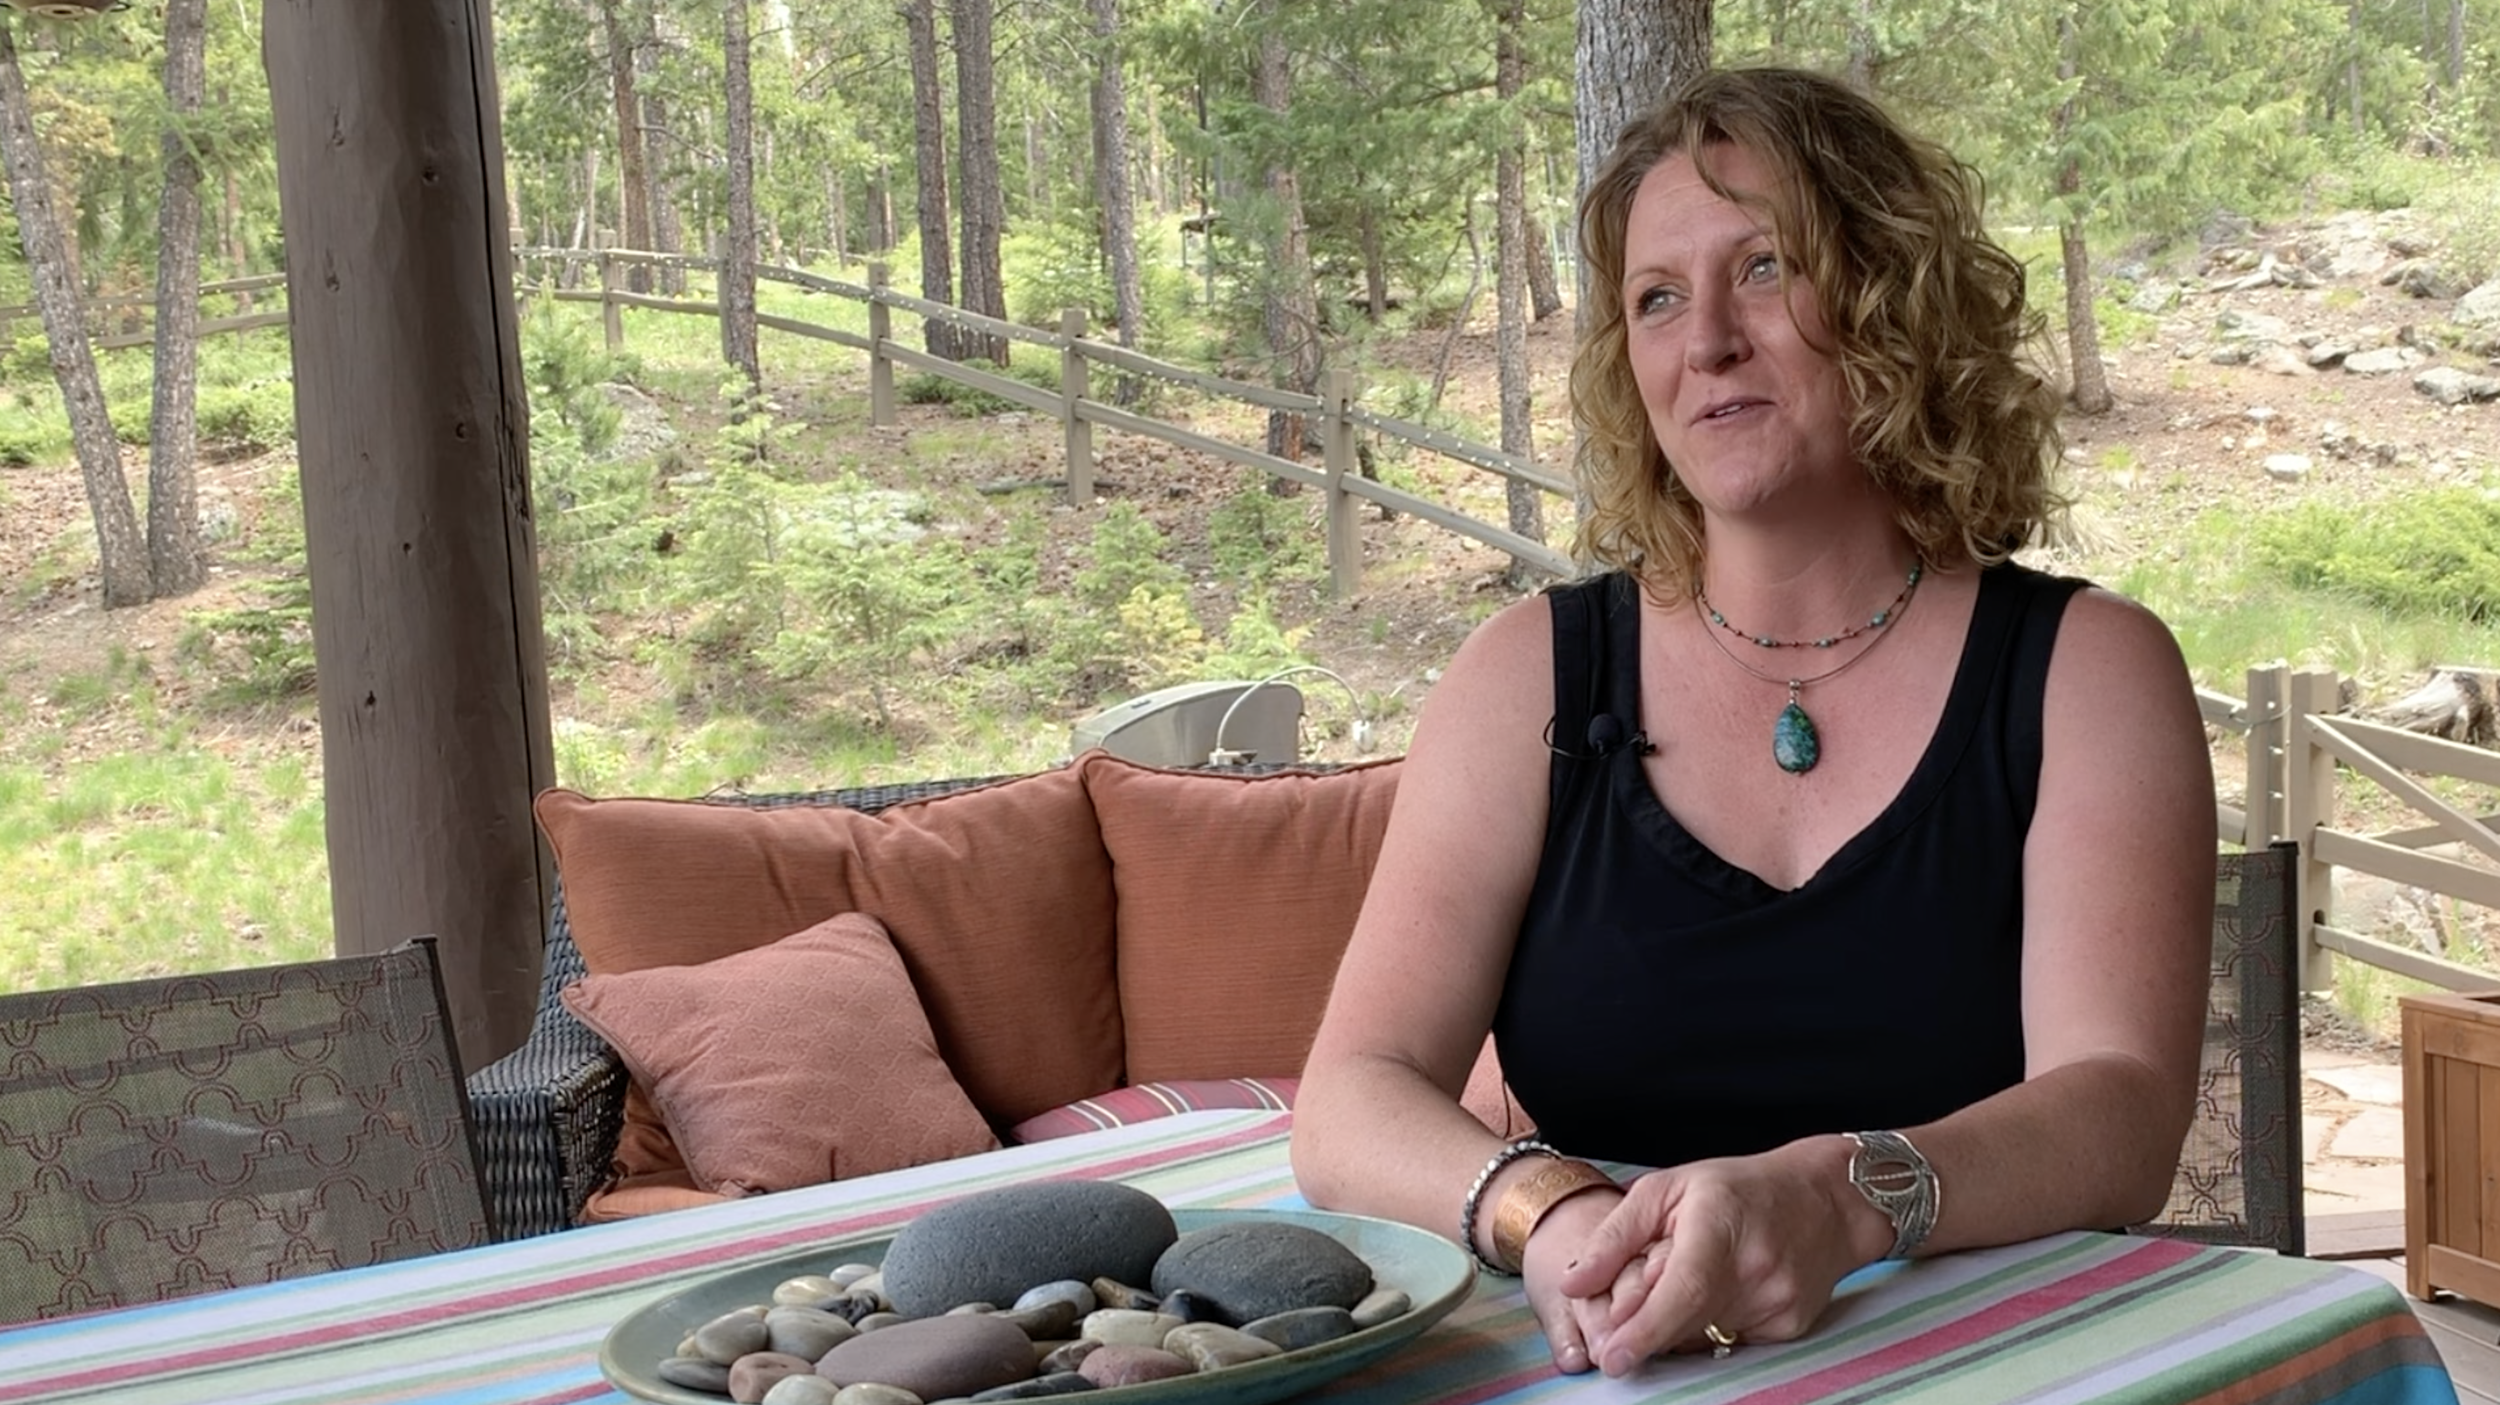 Julie Leidel at her home in the Rocky Mountains outside of Denver, Colorado.